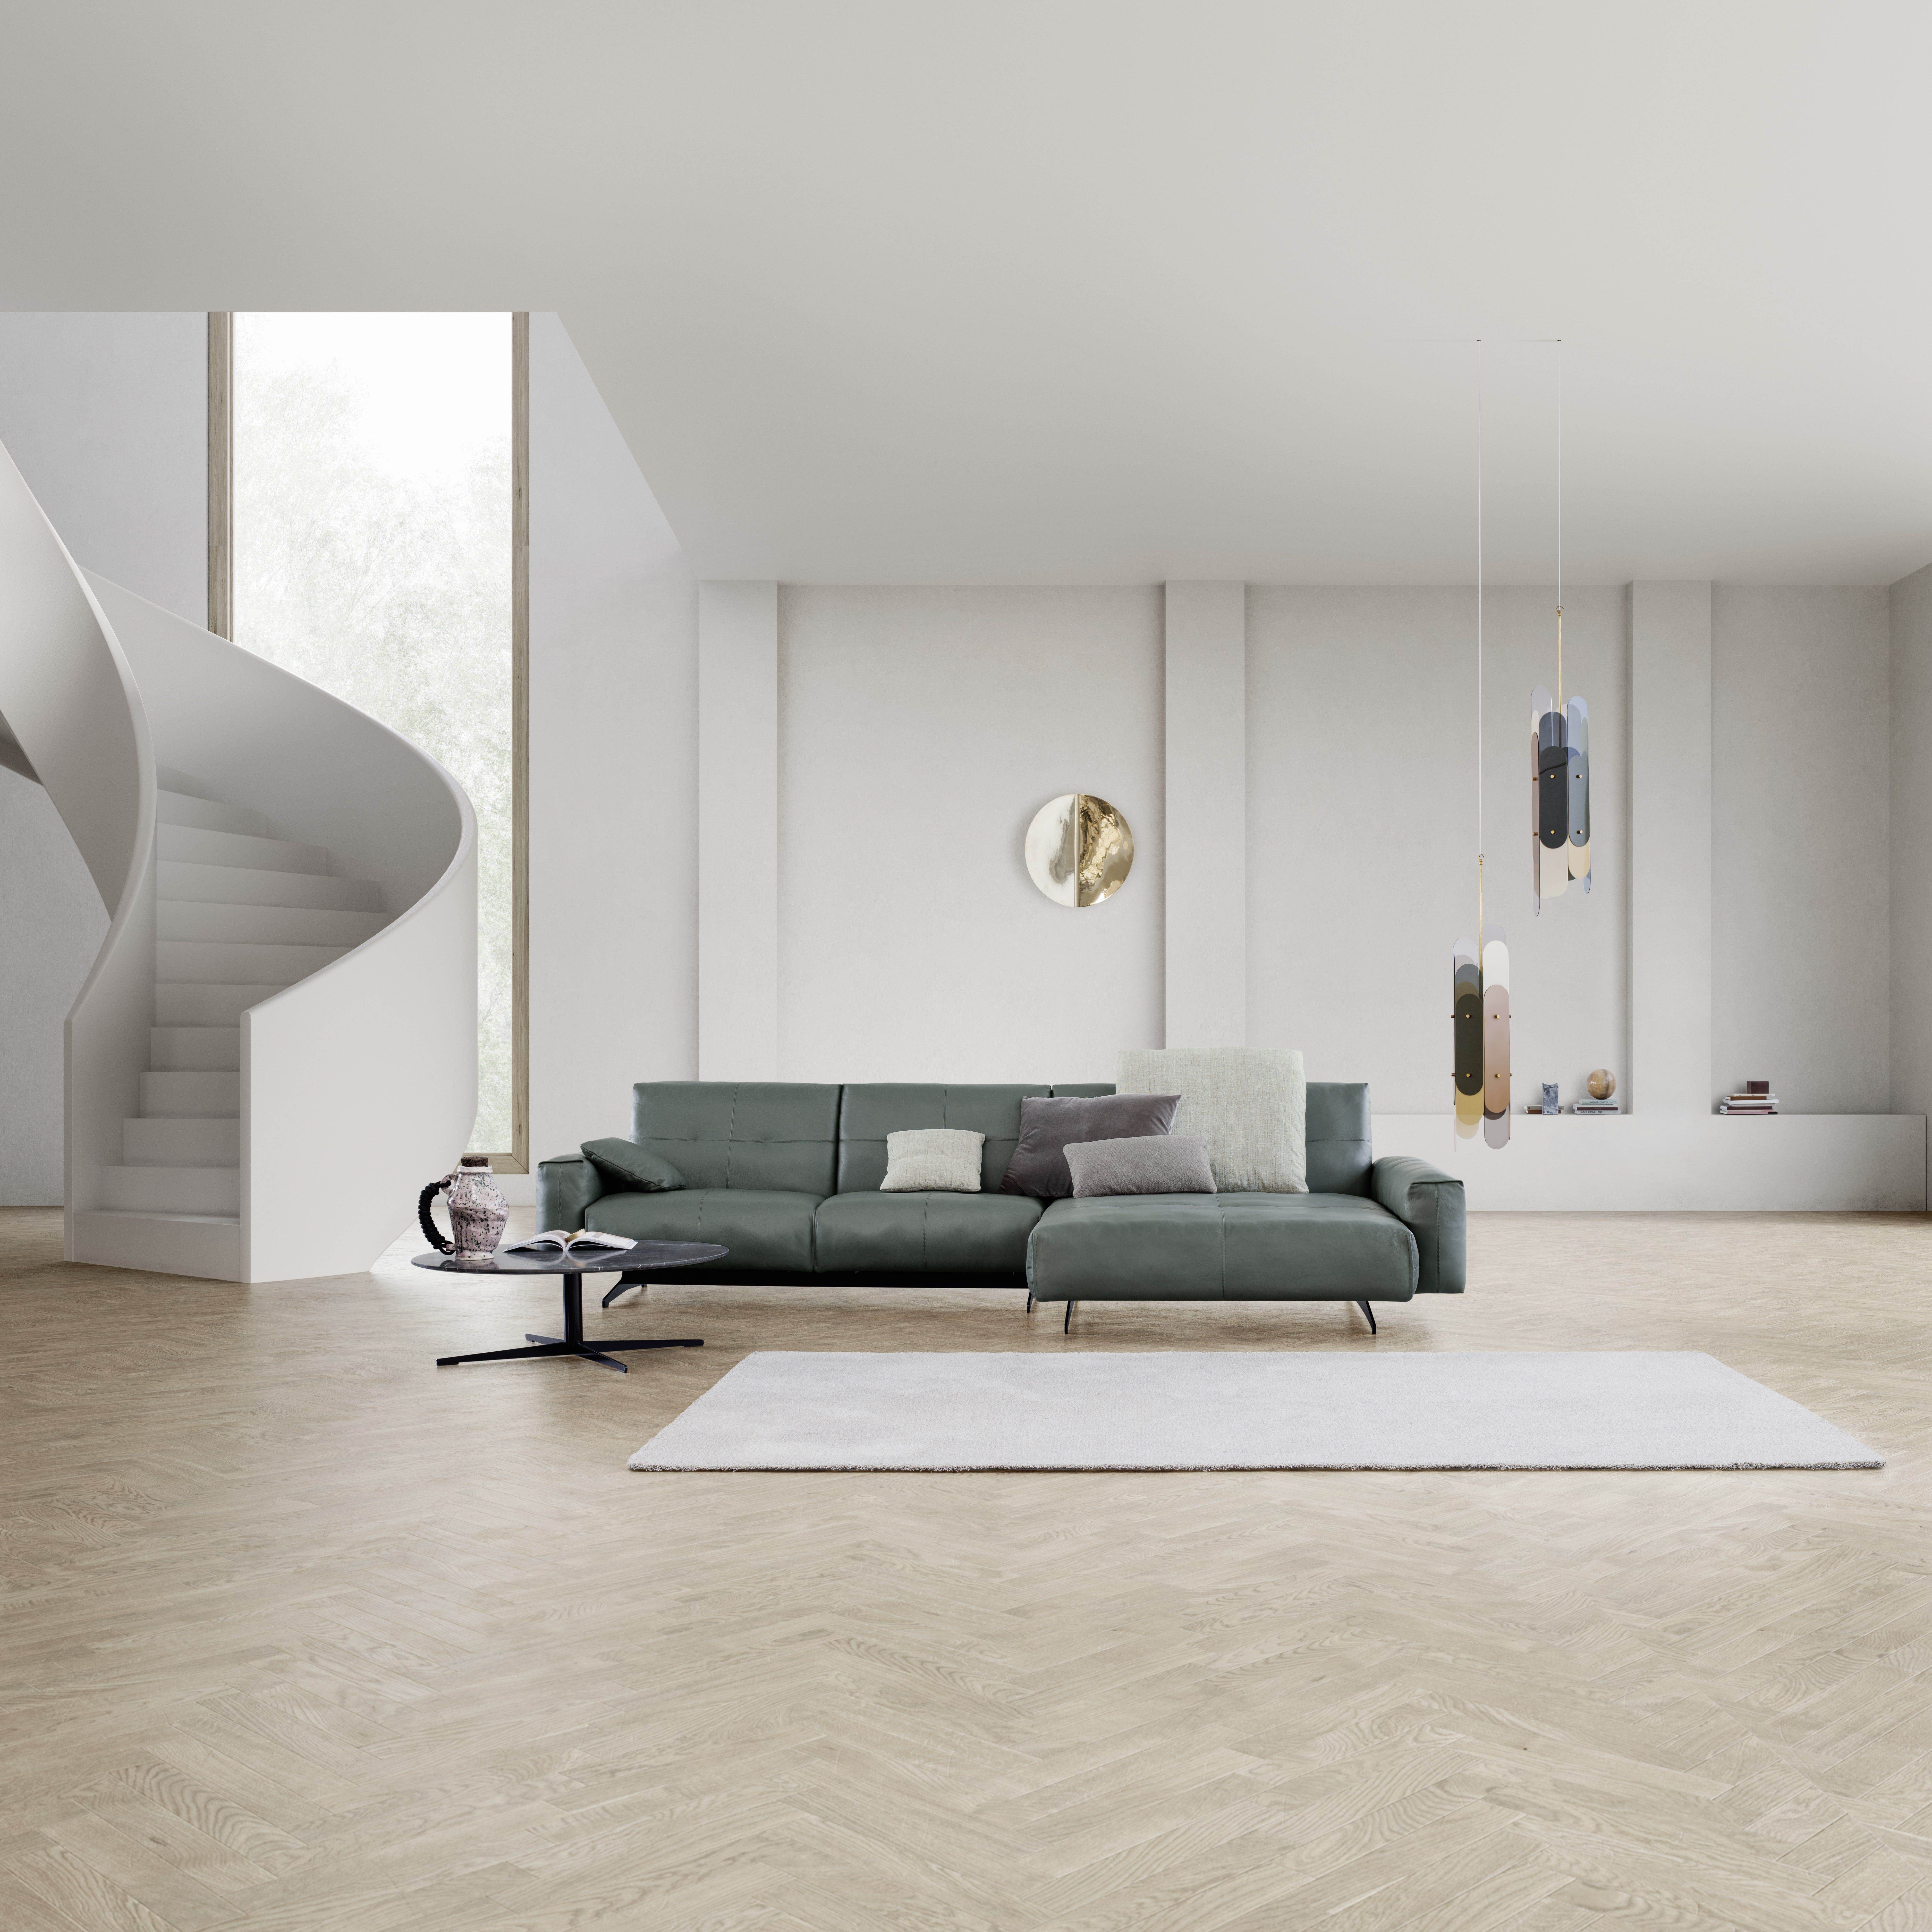 Looking for living room inspiration? How about this one with nice ...